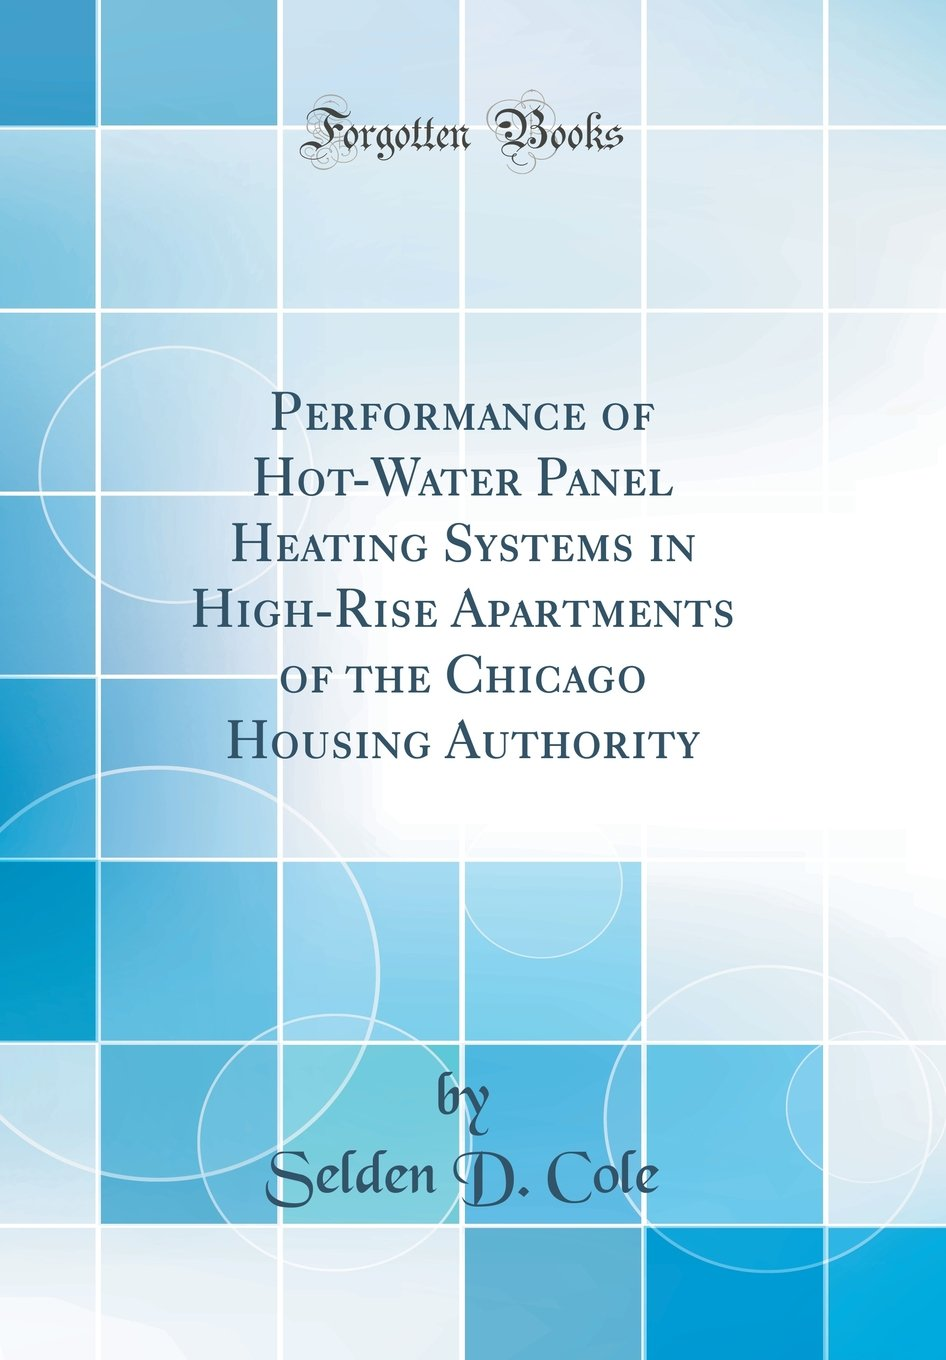 Performance of Hot-Water Panel Heating Systems in High-Rise ...